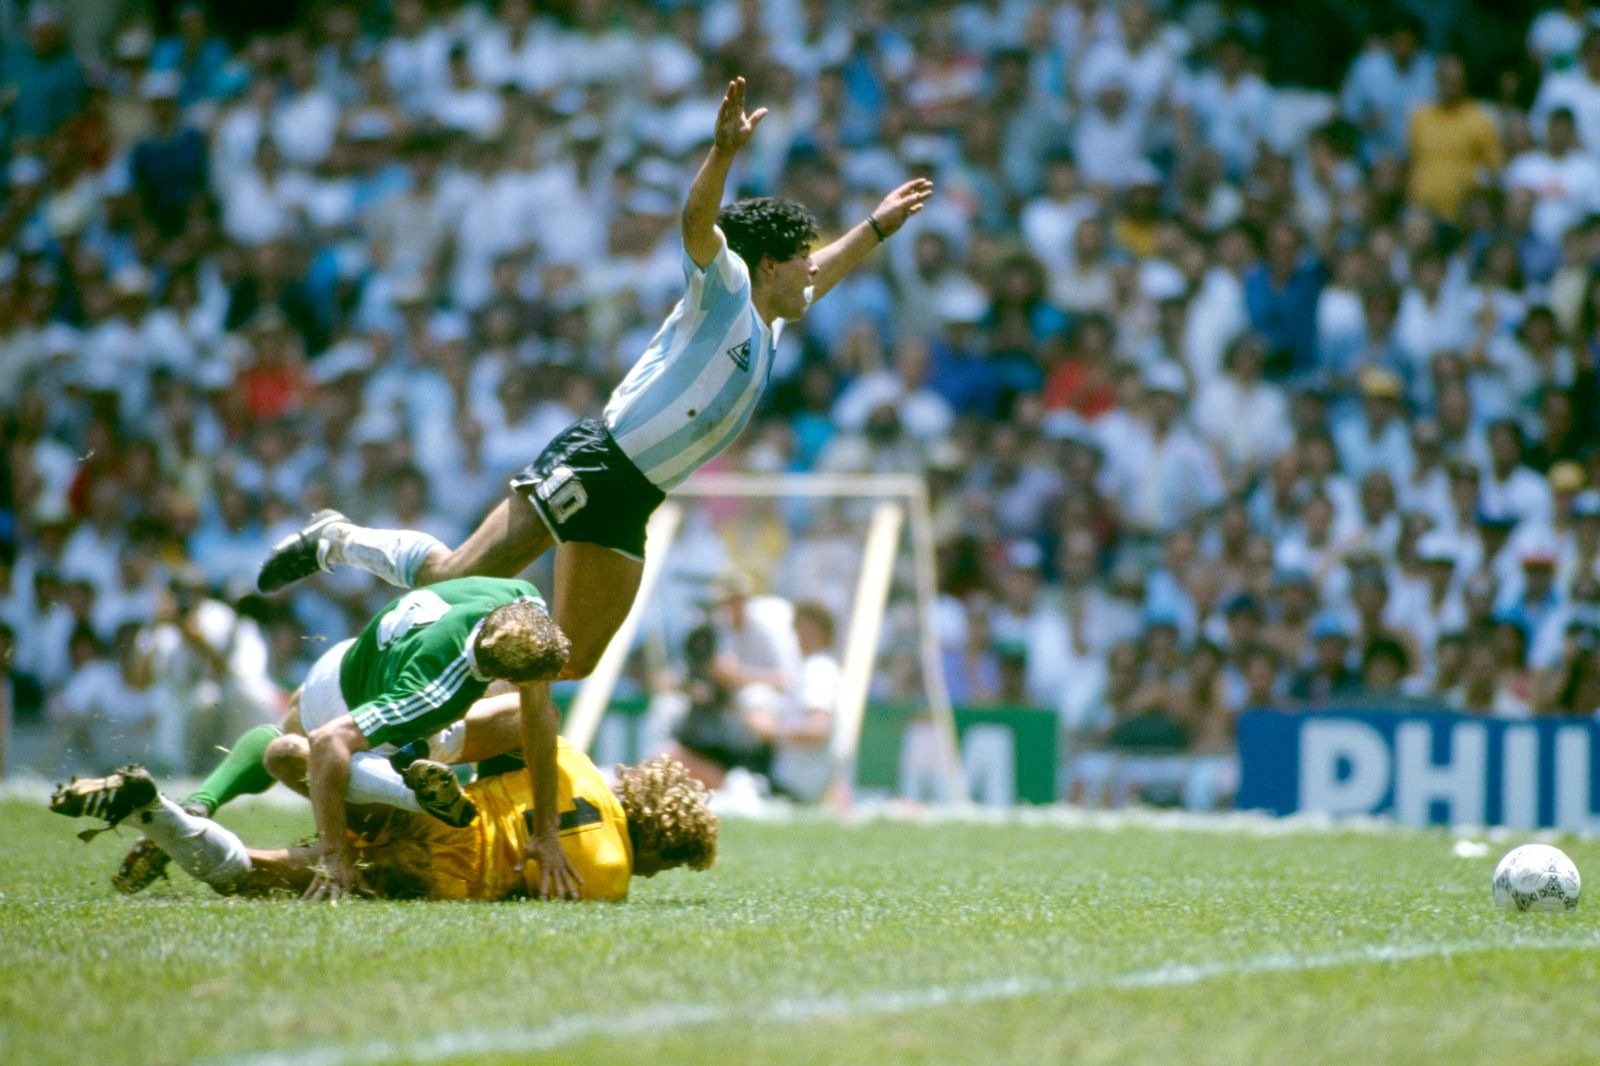 Soccer - 1986 FIFA World Cup Final - Argentina vs Germany